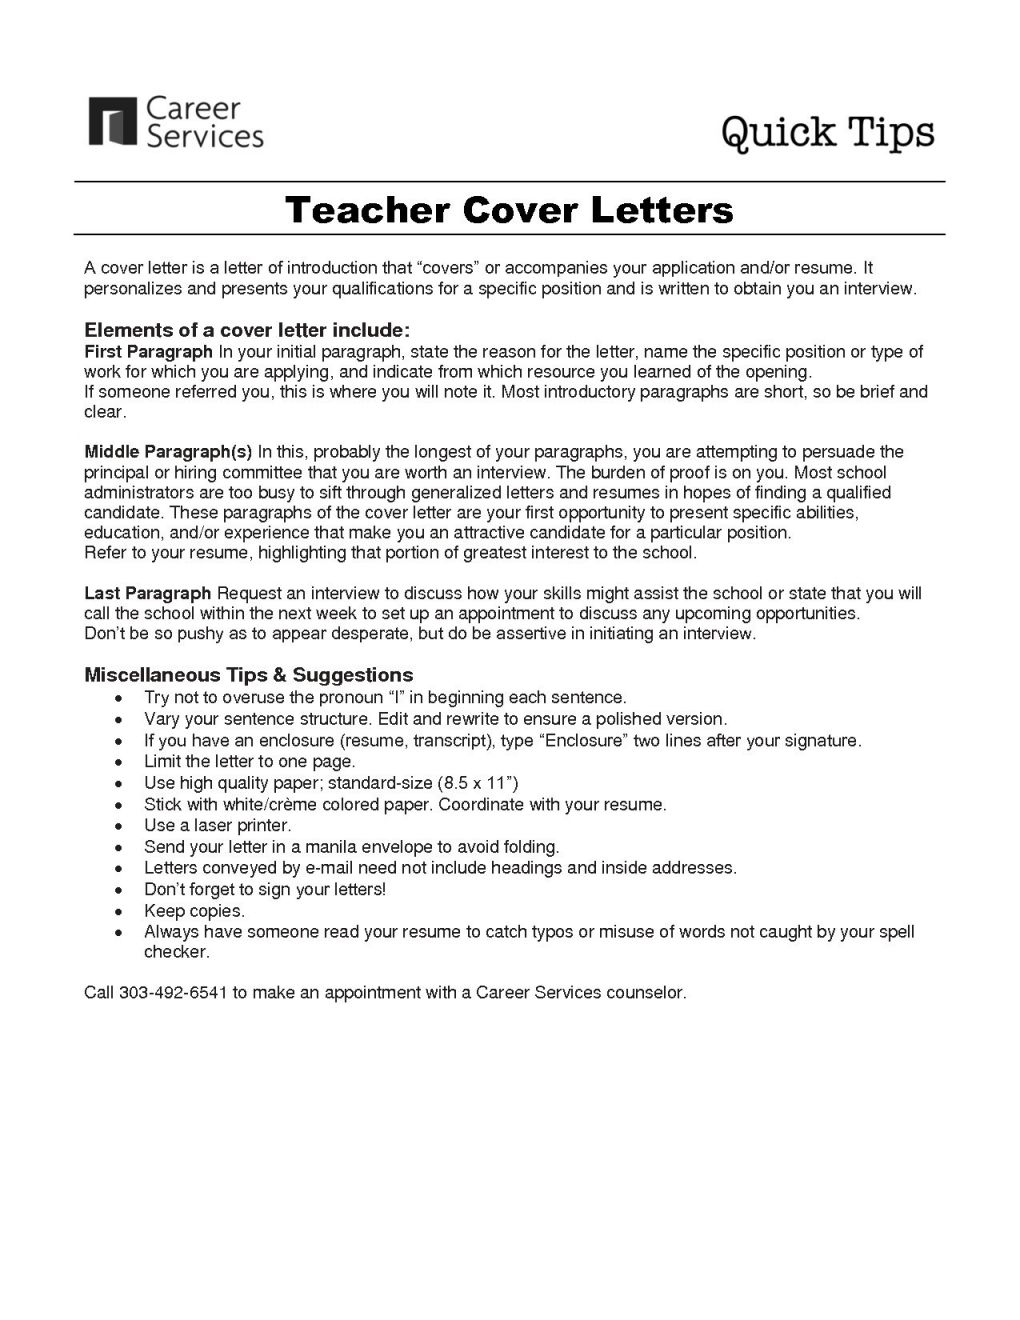 Rfp Cover Letter Template Collection | Letter Cover Templates